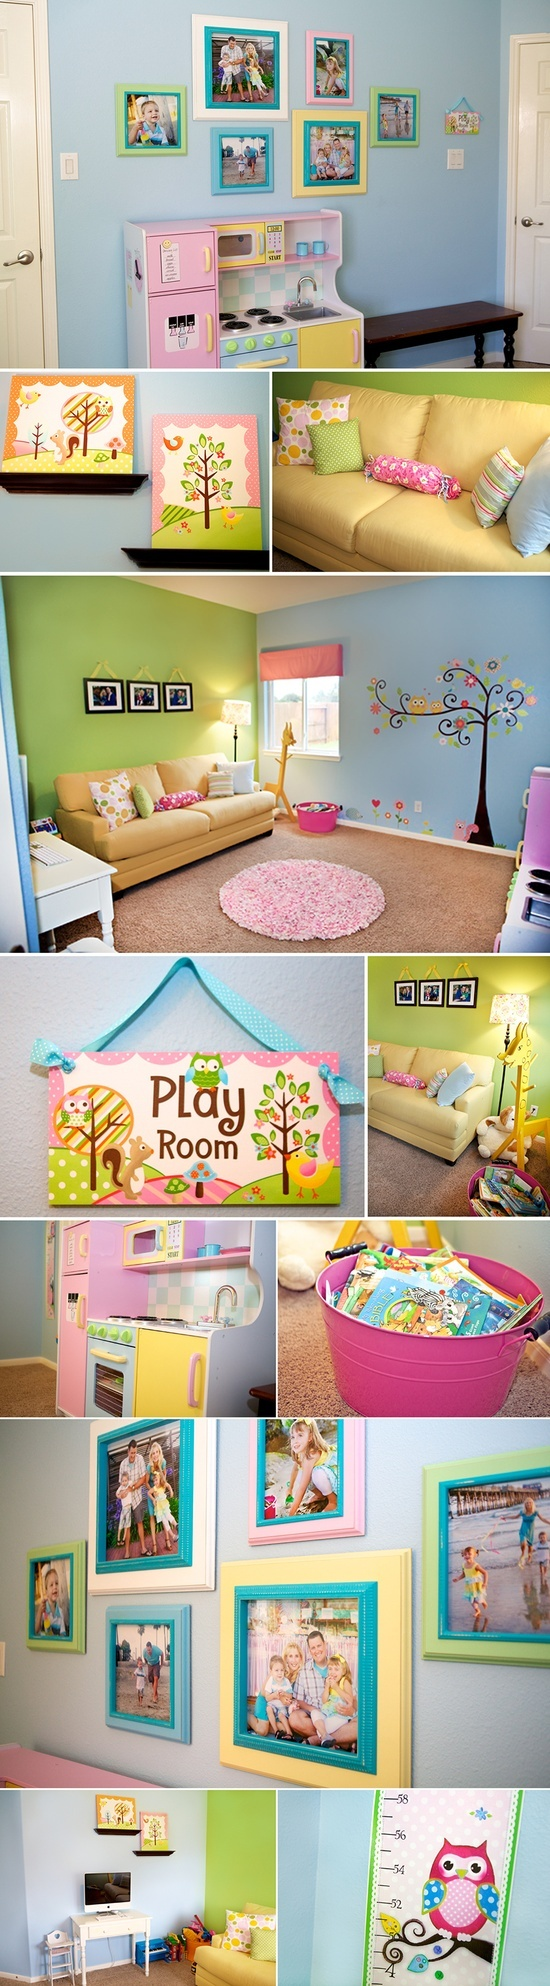 I Want To Copy This Idea For The Playroom, But Replace The Owl Tree